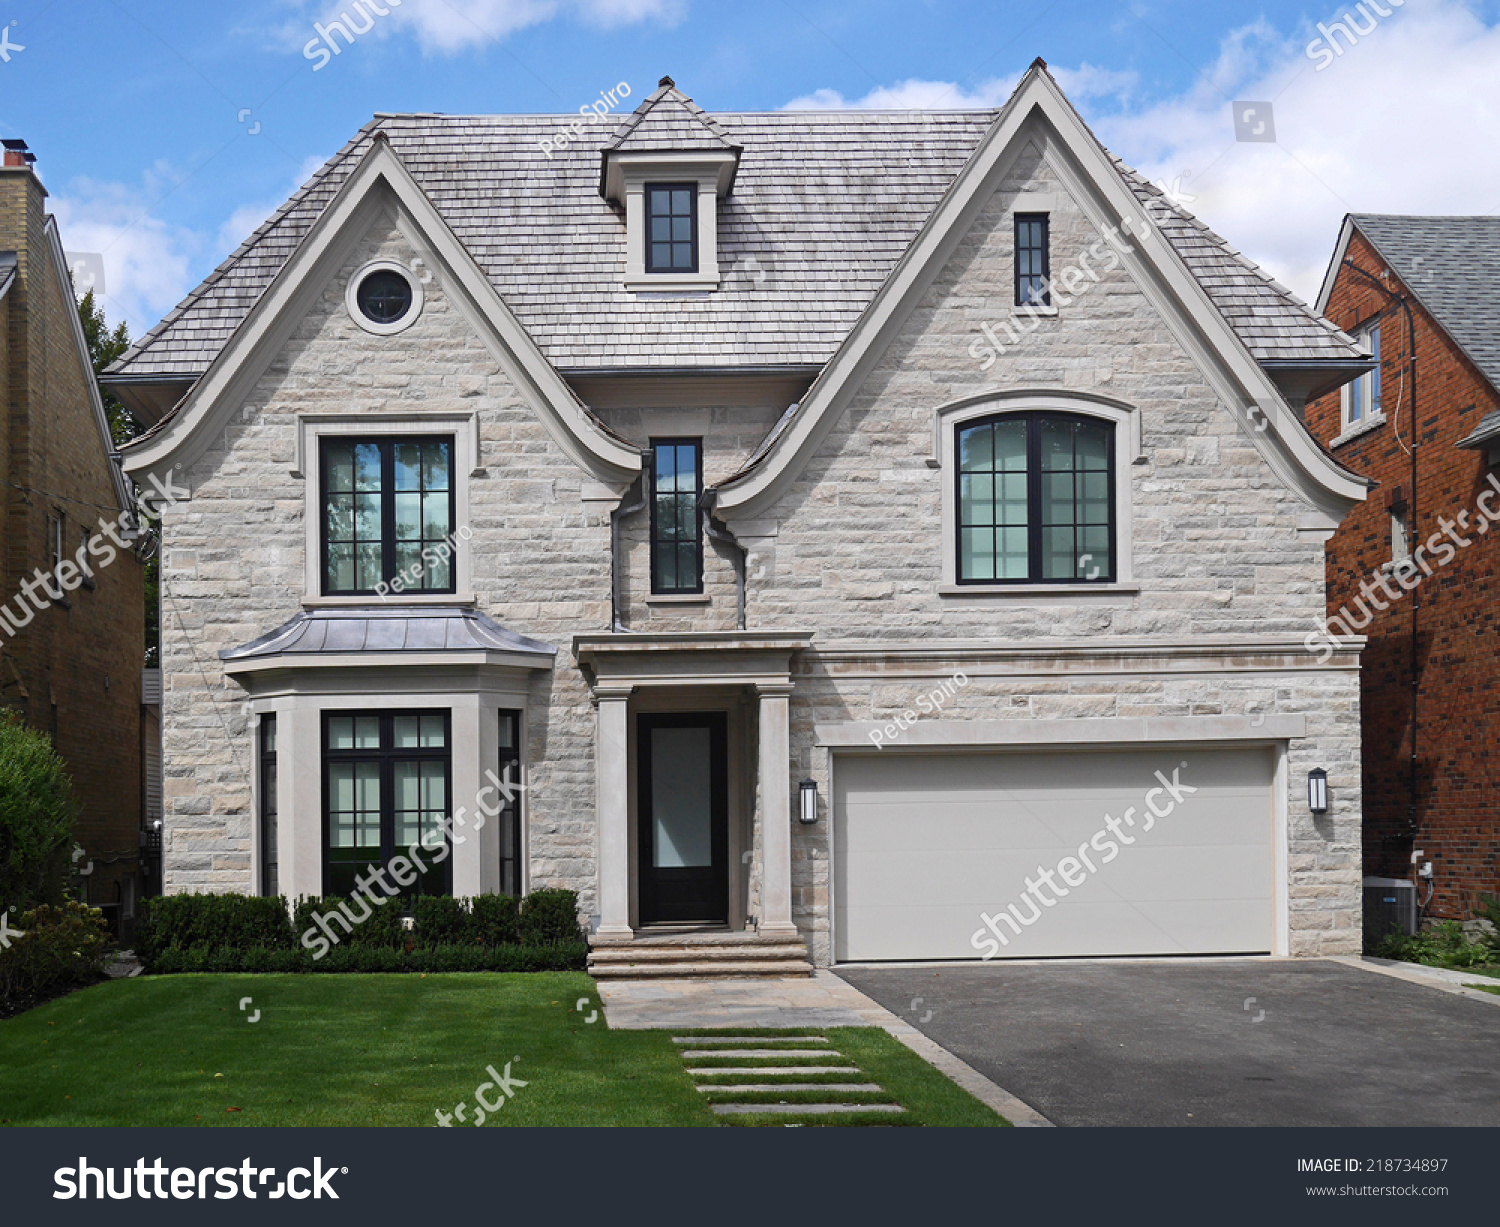 Stone Front House stone front house large gables stock photo 218734897 - shutterstock